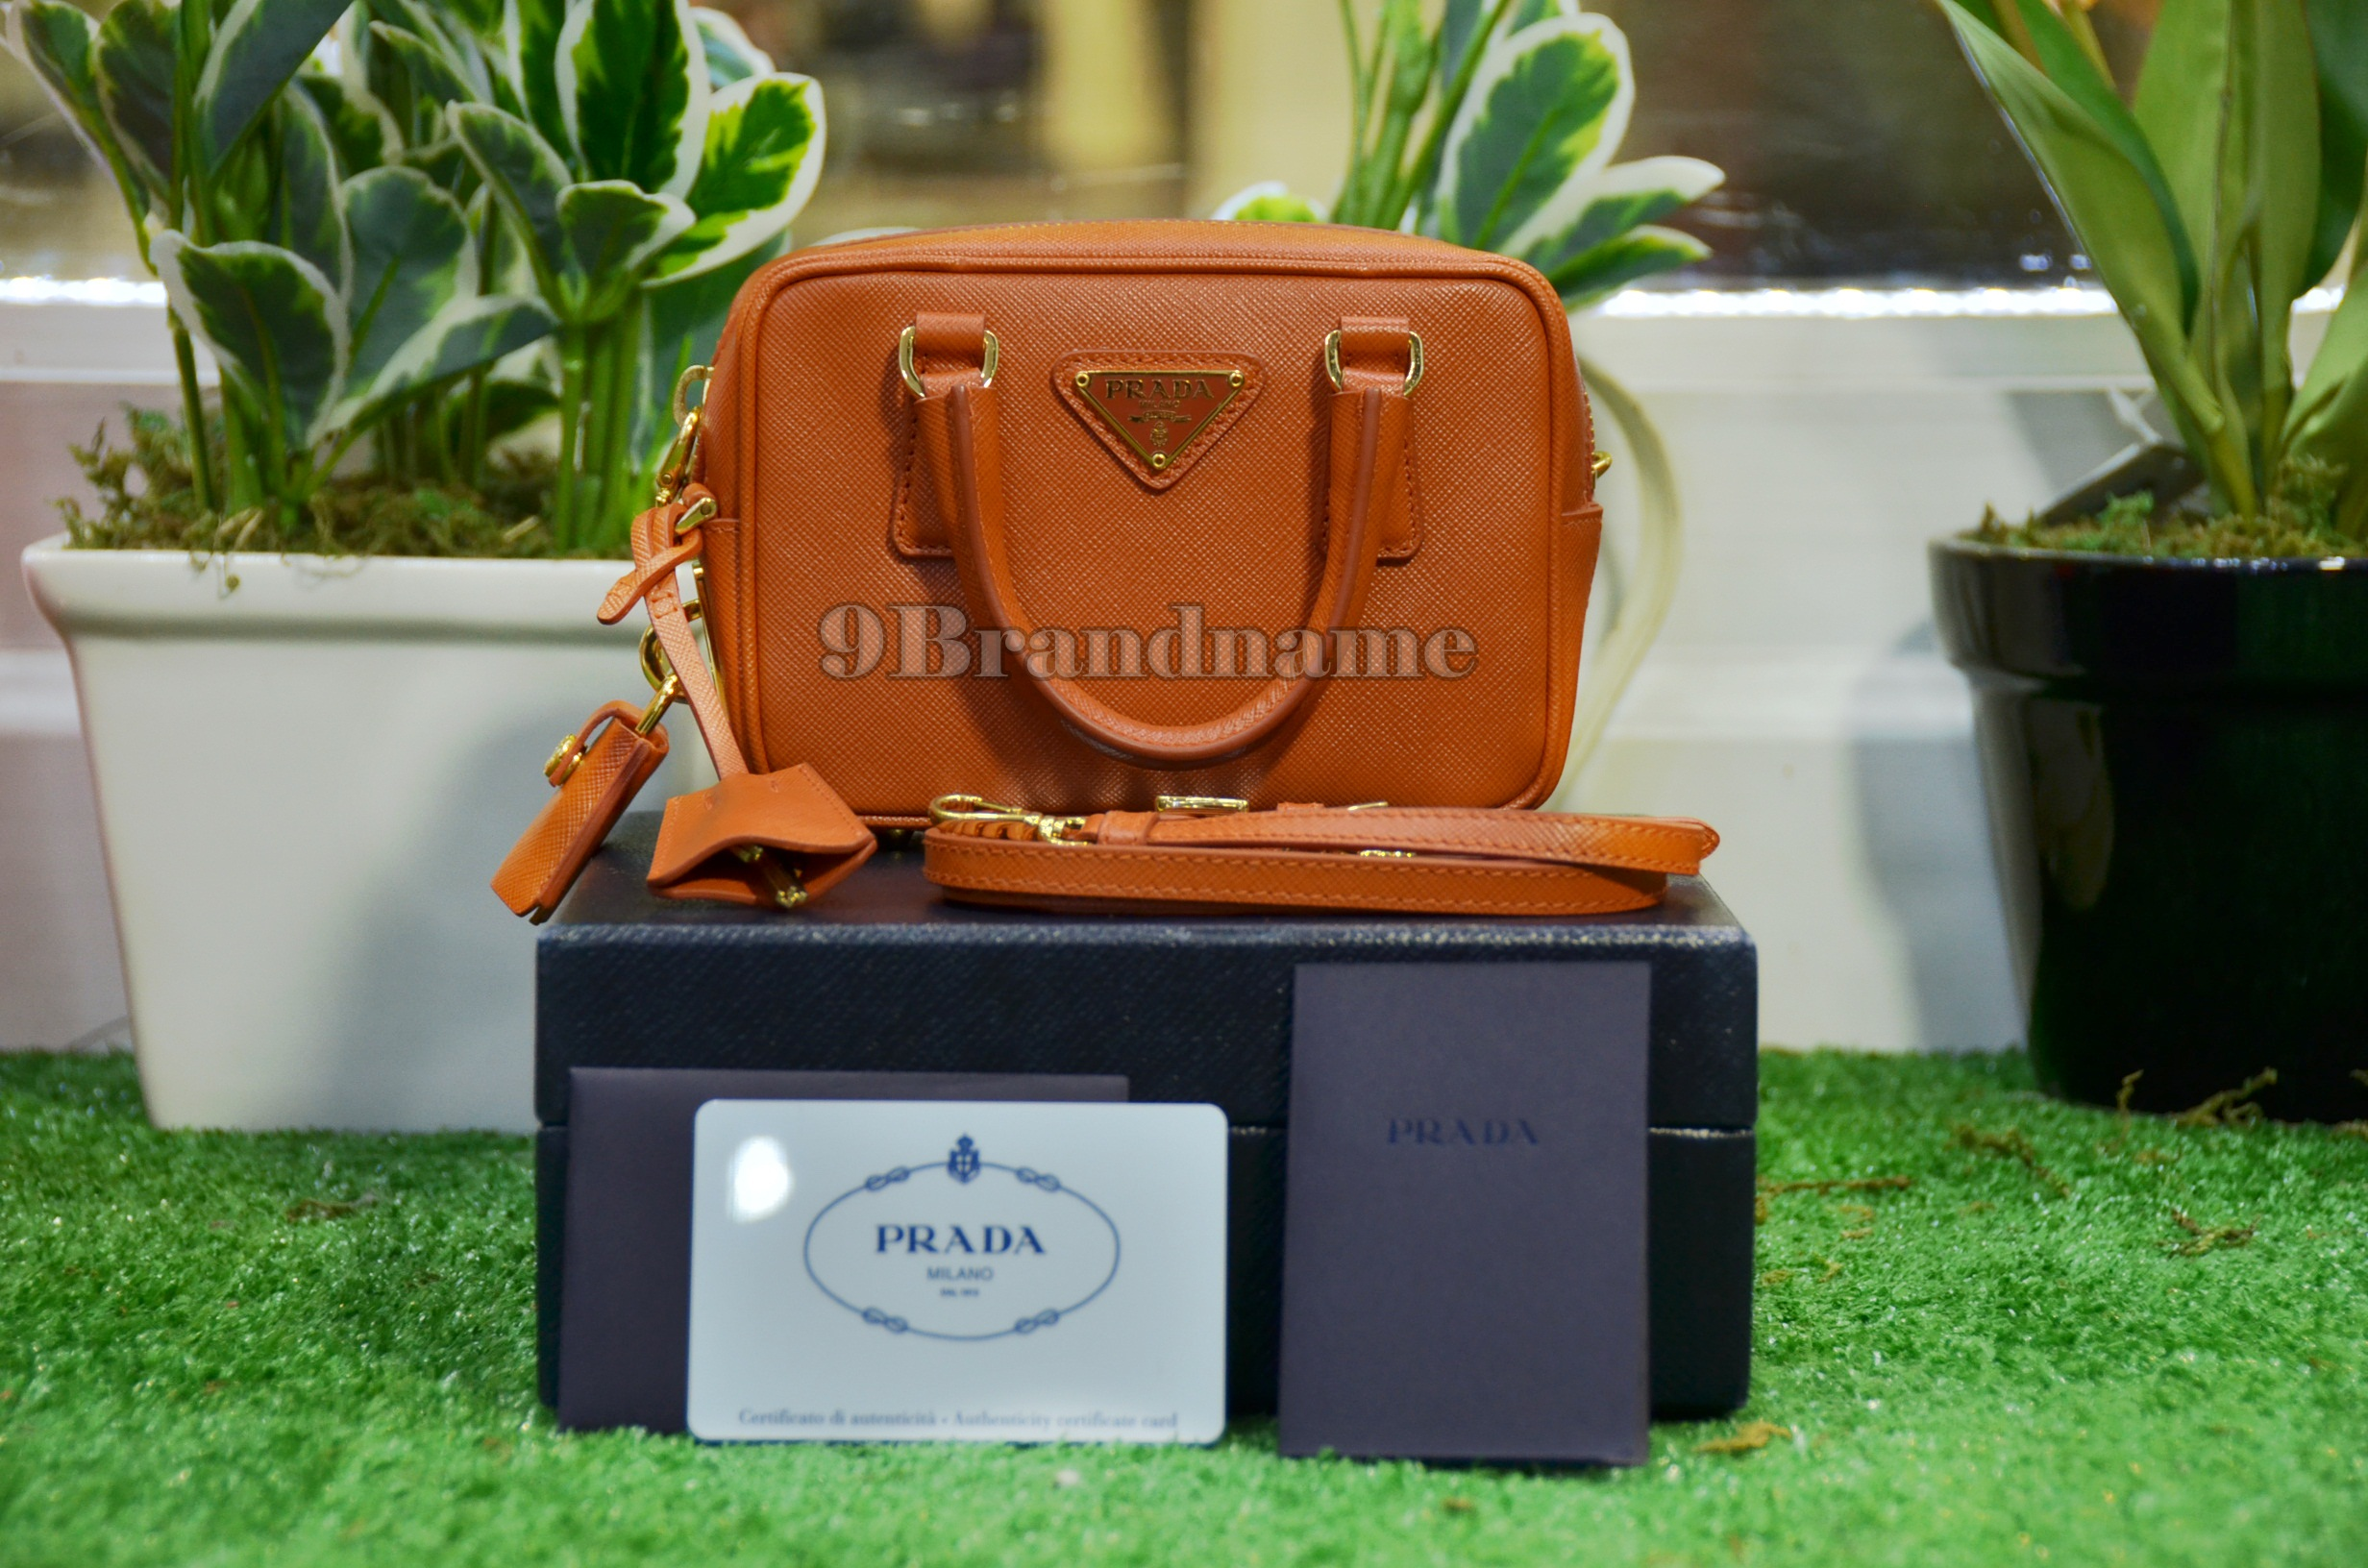 Prada Mini Box Papaya Orange - Used Authentic Bag